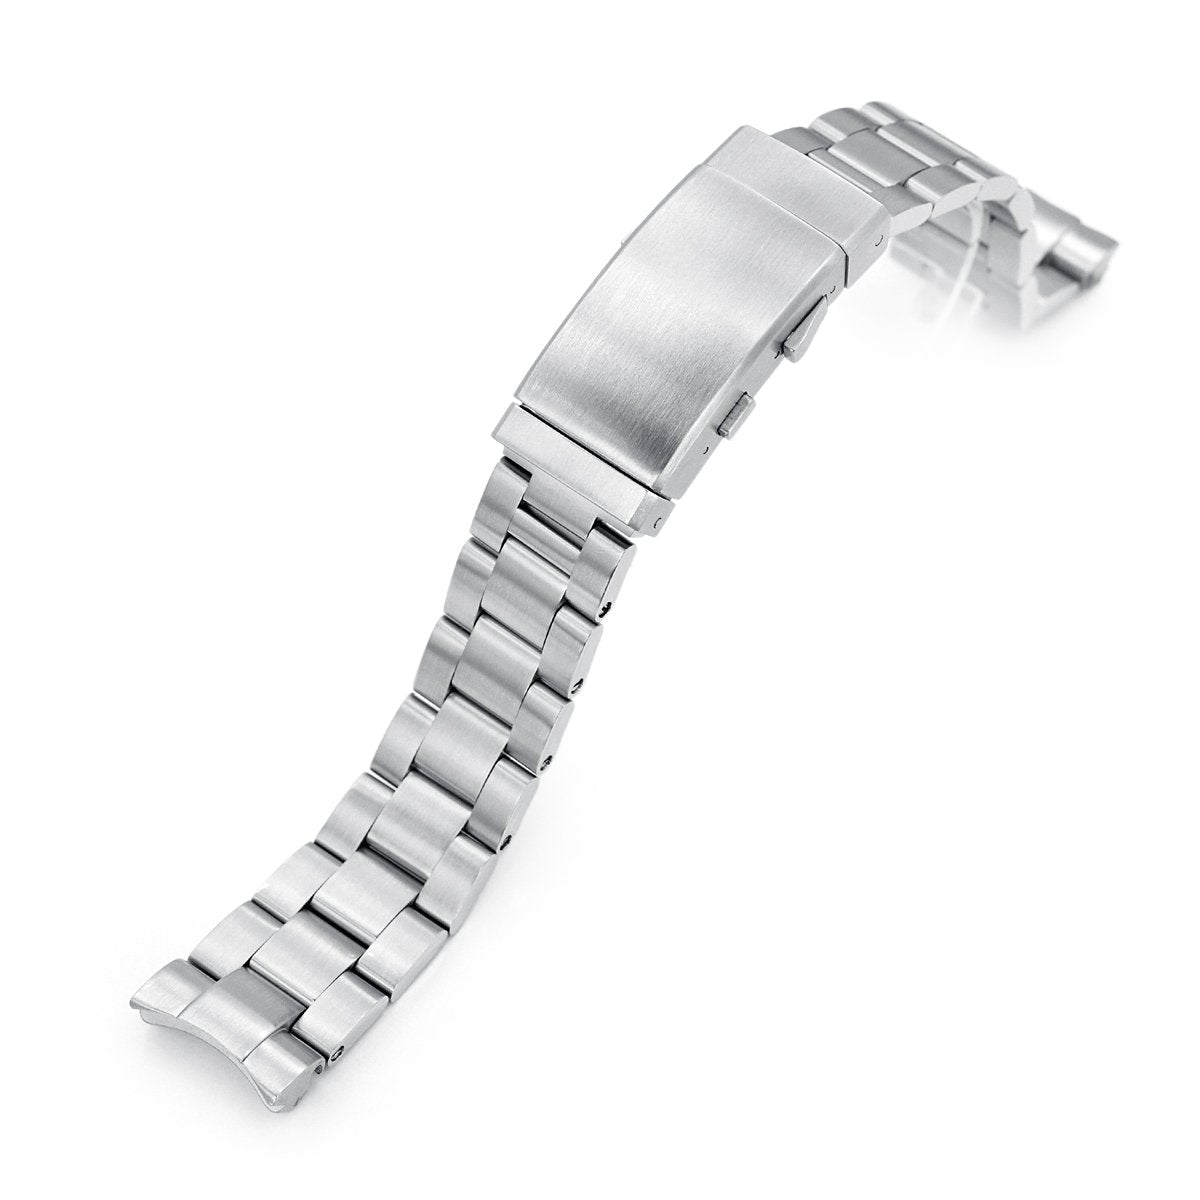 20mm Super-O Boyer 316L Stainless Steel Watch Bracelet for Seiko Mini Turtles SRPC35 Wetsuit Ratchet Buckle Brushed Strapcode Watch Bands